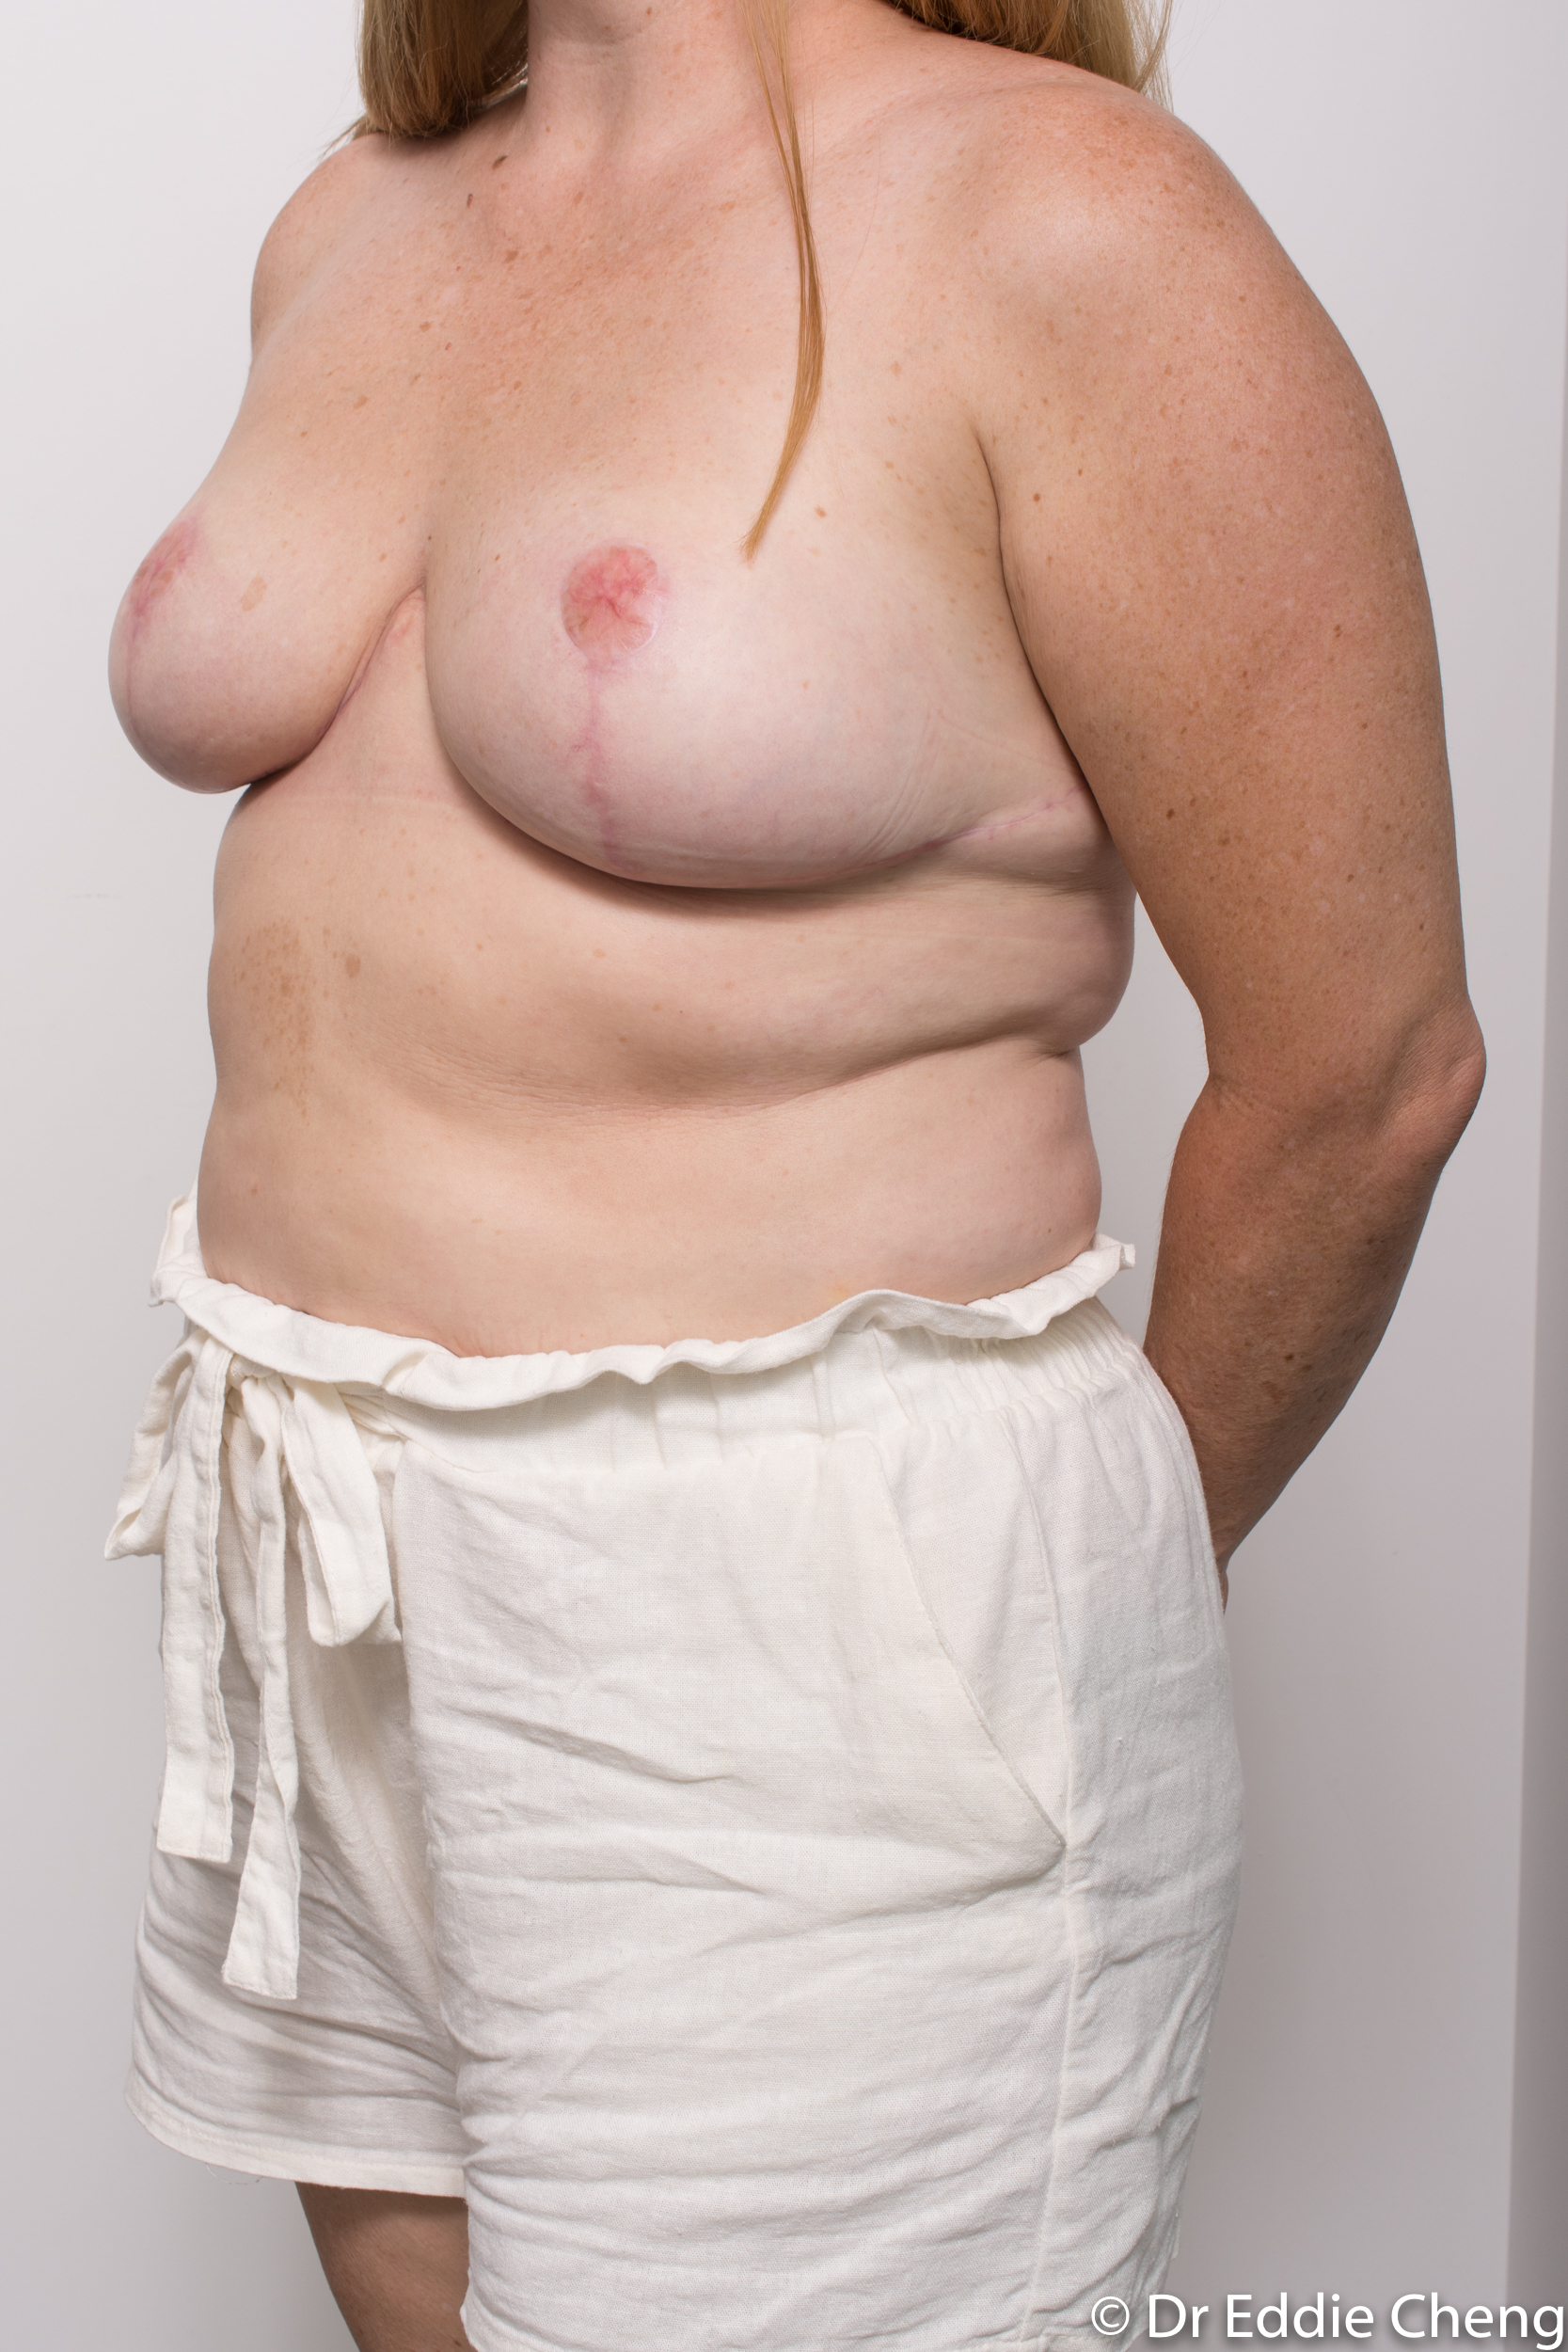 breast reduction dr eddie cheng brisbane surgeon pre and post operative images-7